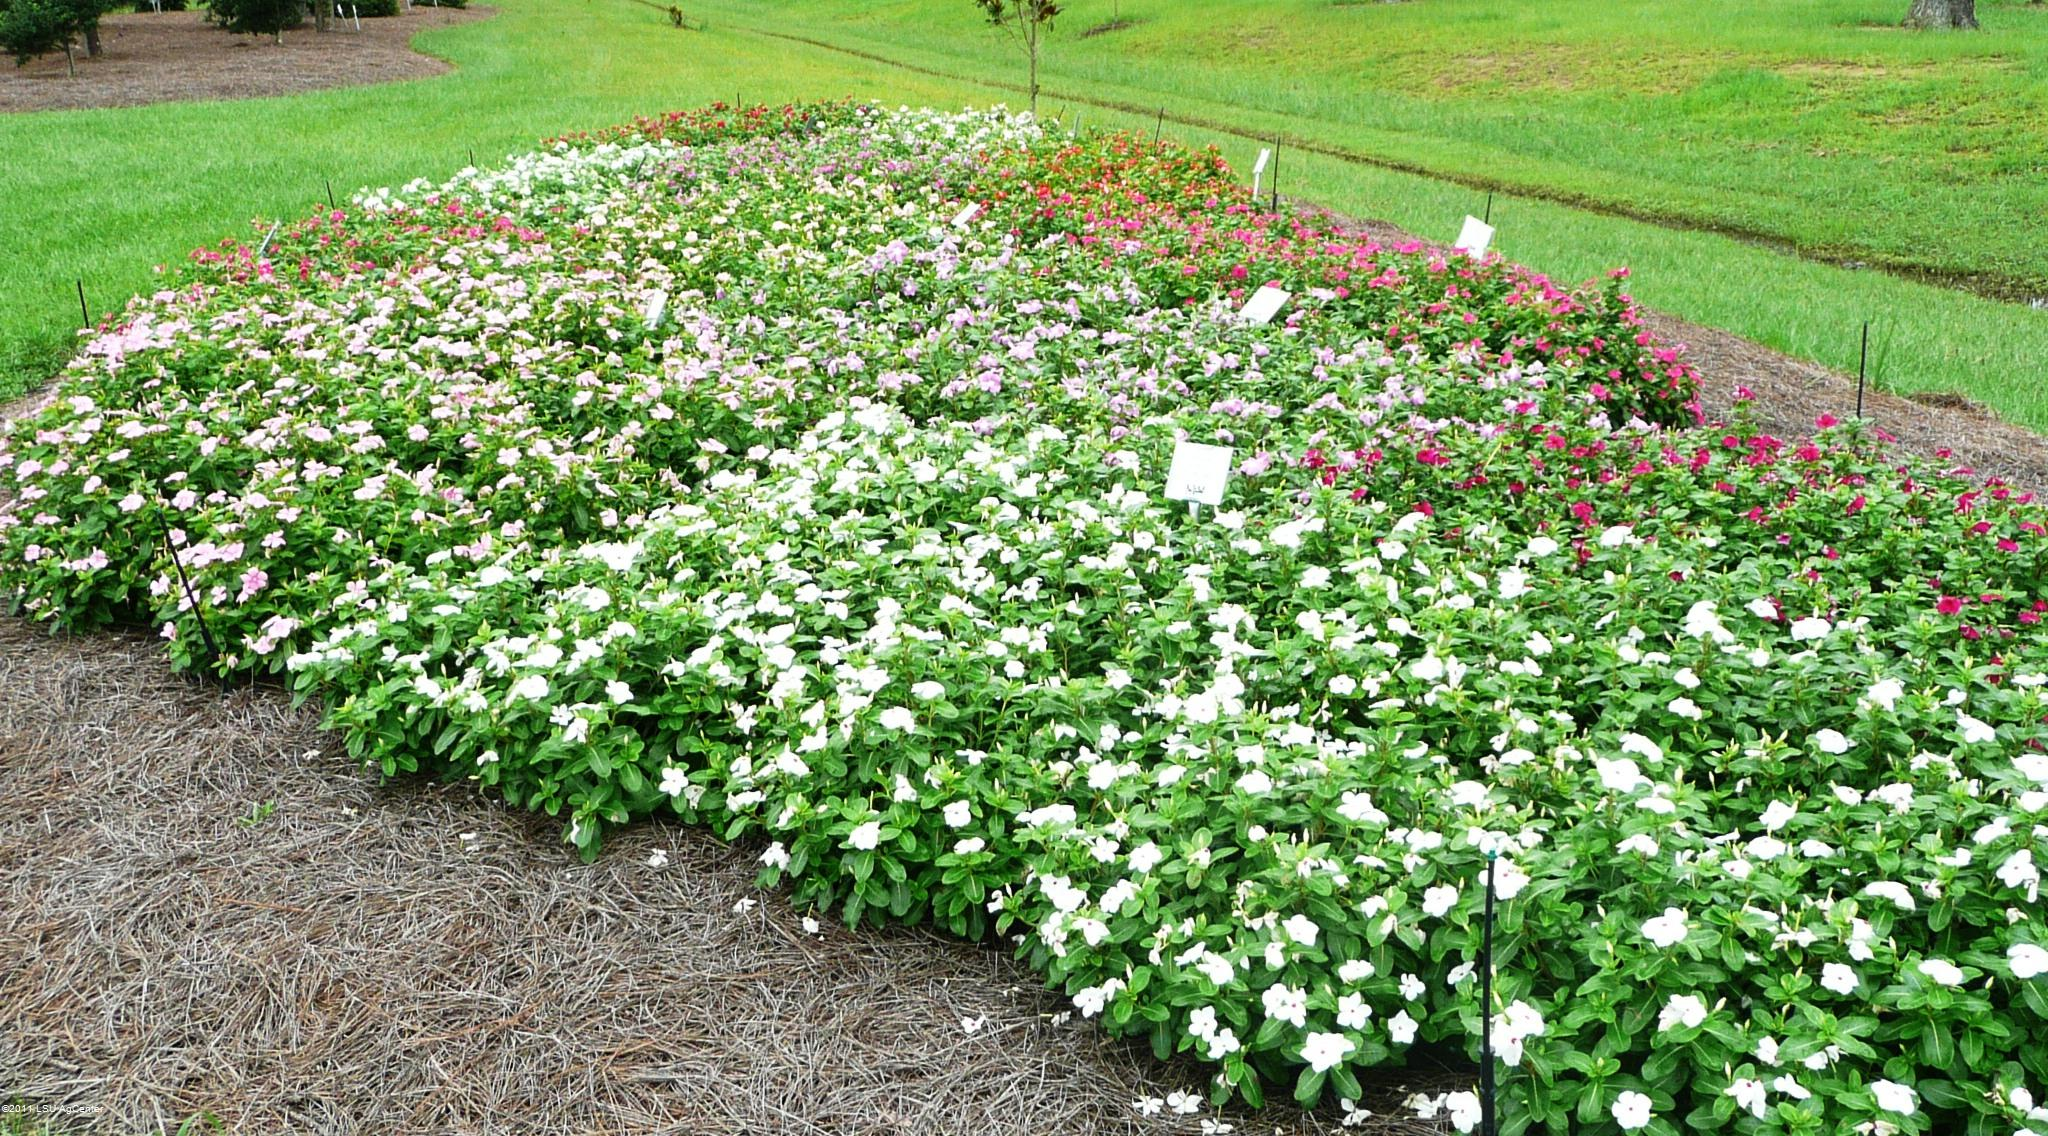 Popular vincas vary greatly in landscape performance